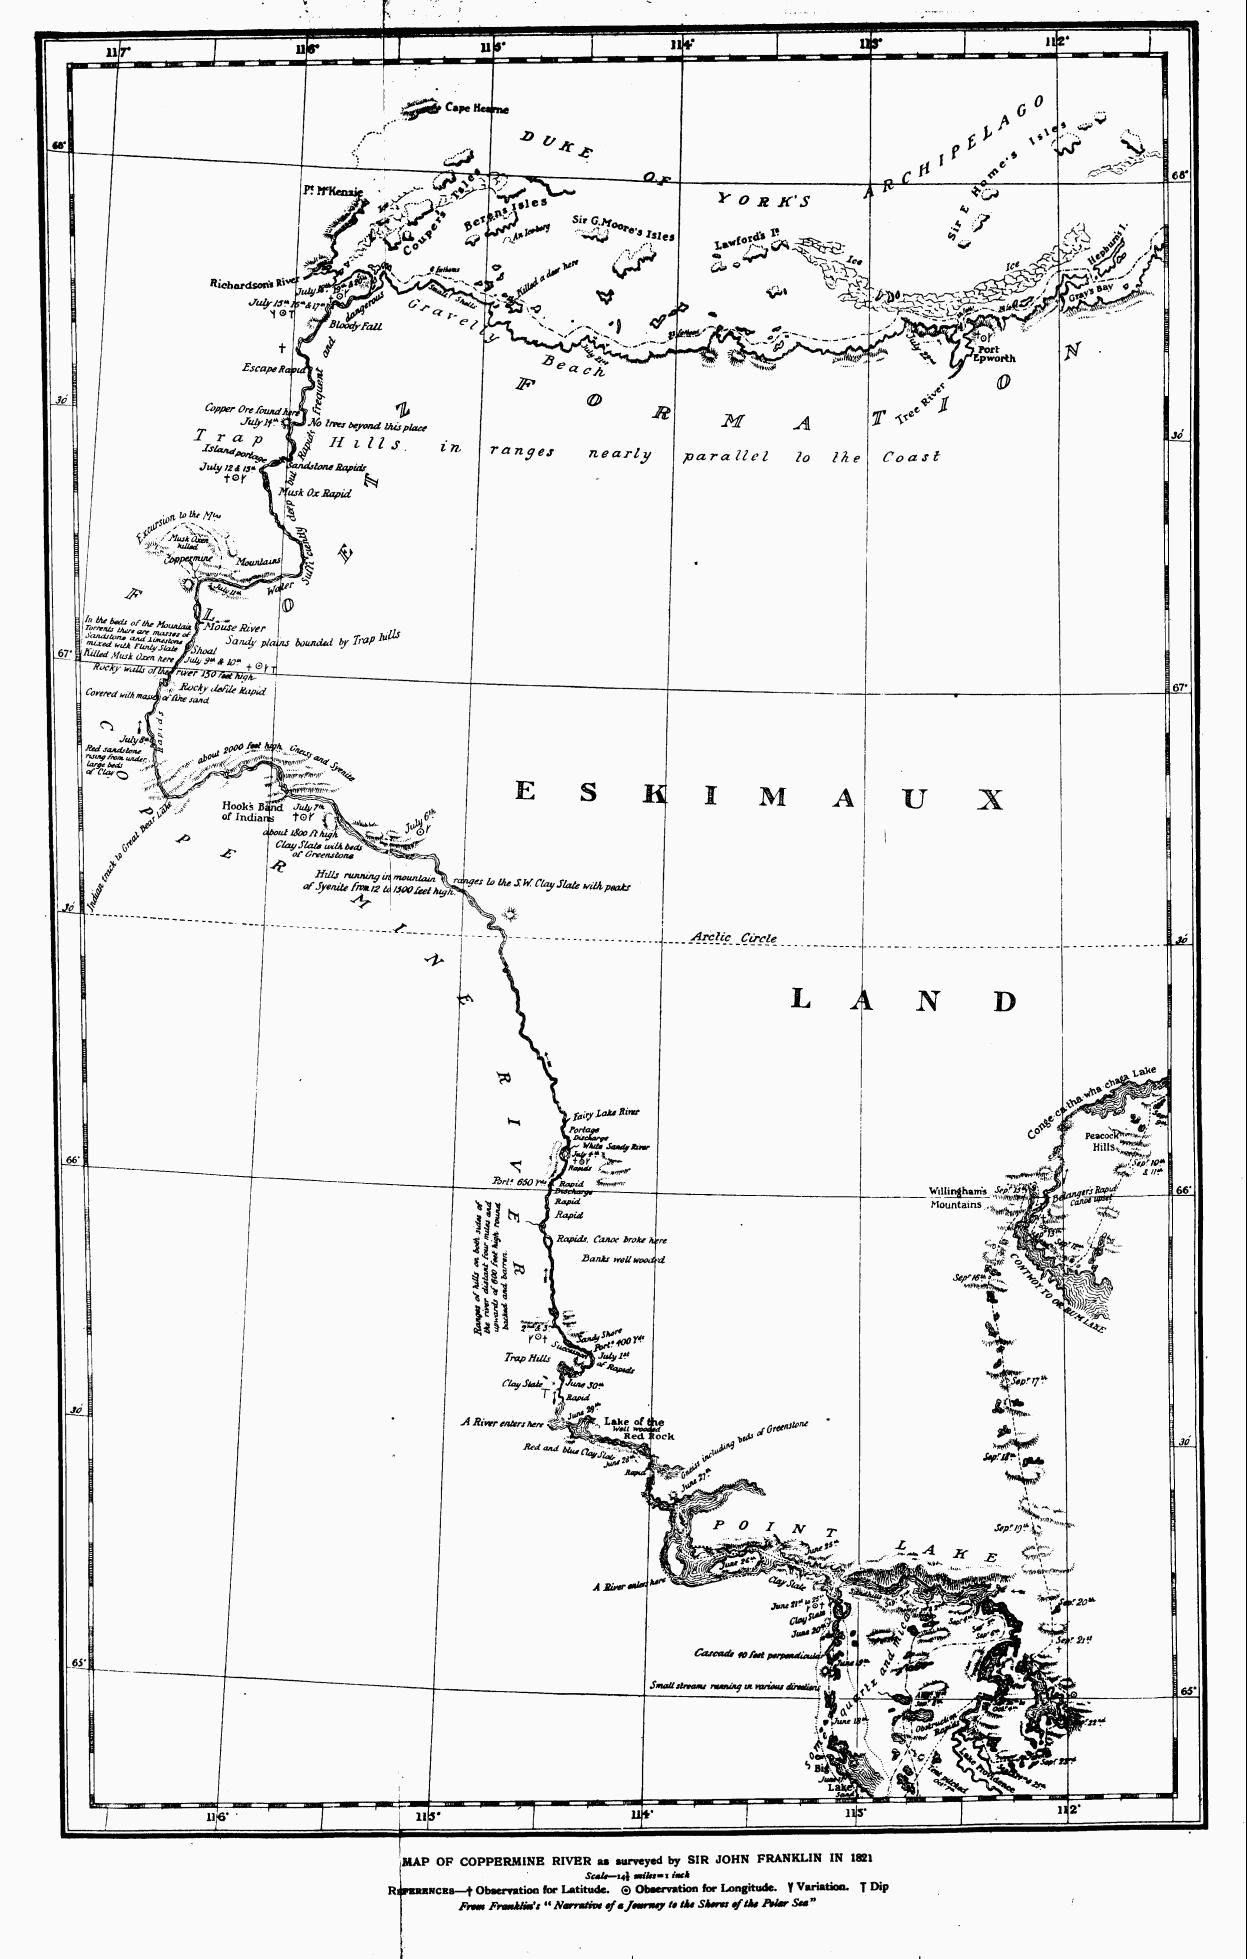 The project gutenberg ebook of a journey from prince of wales's fort in hudson's bay to the northern ocean by samuel hearne